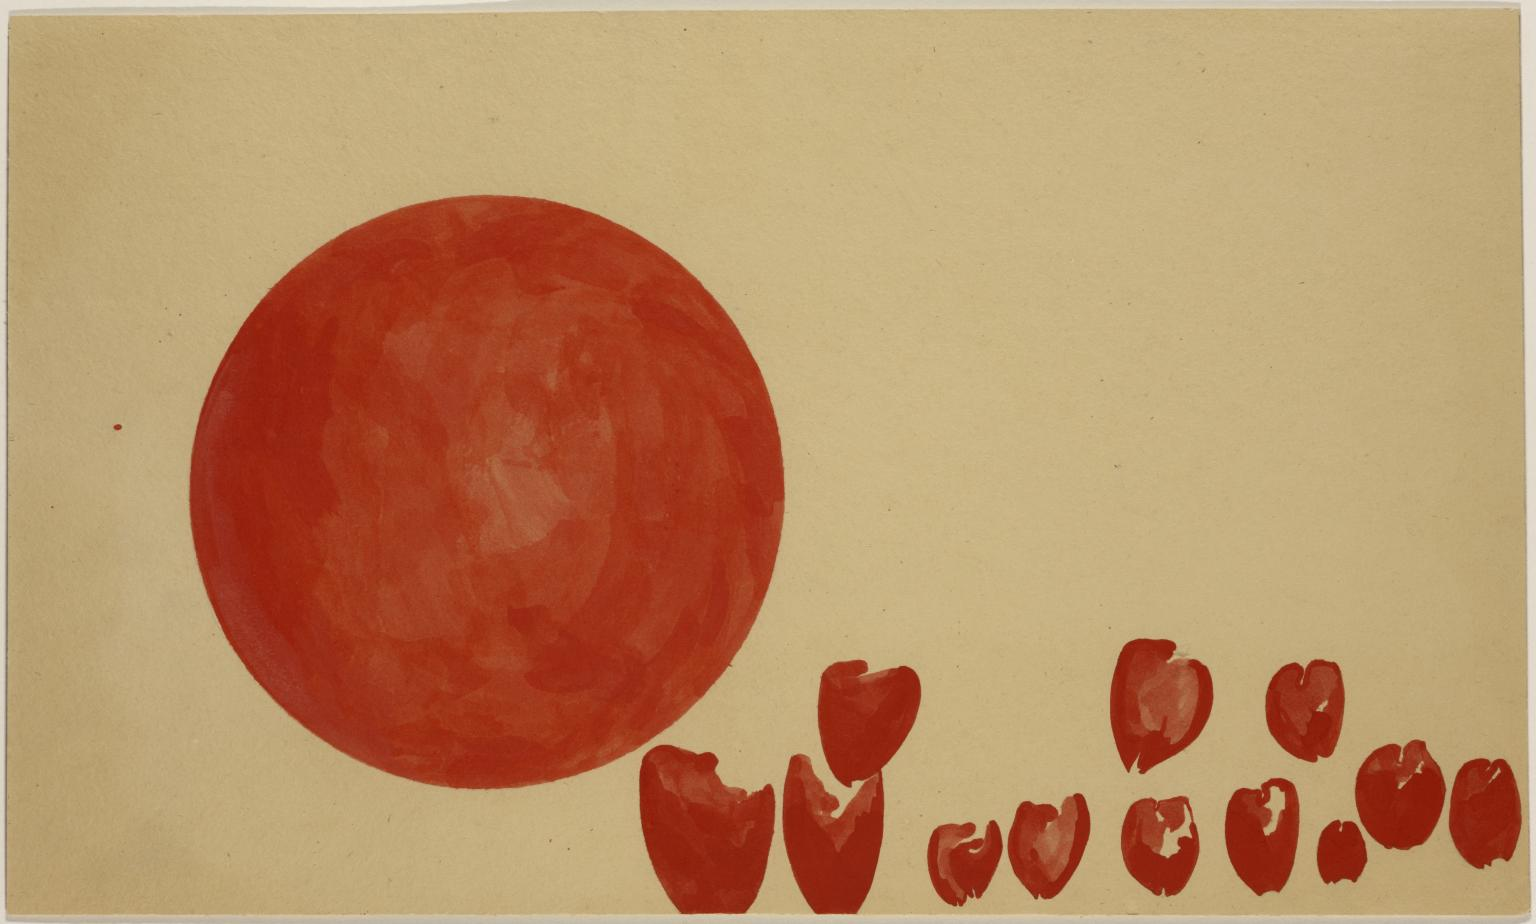 Hearts of the Revolutionaries: Passage of the Planets of the Future 1955 by Joseph Beuys